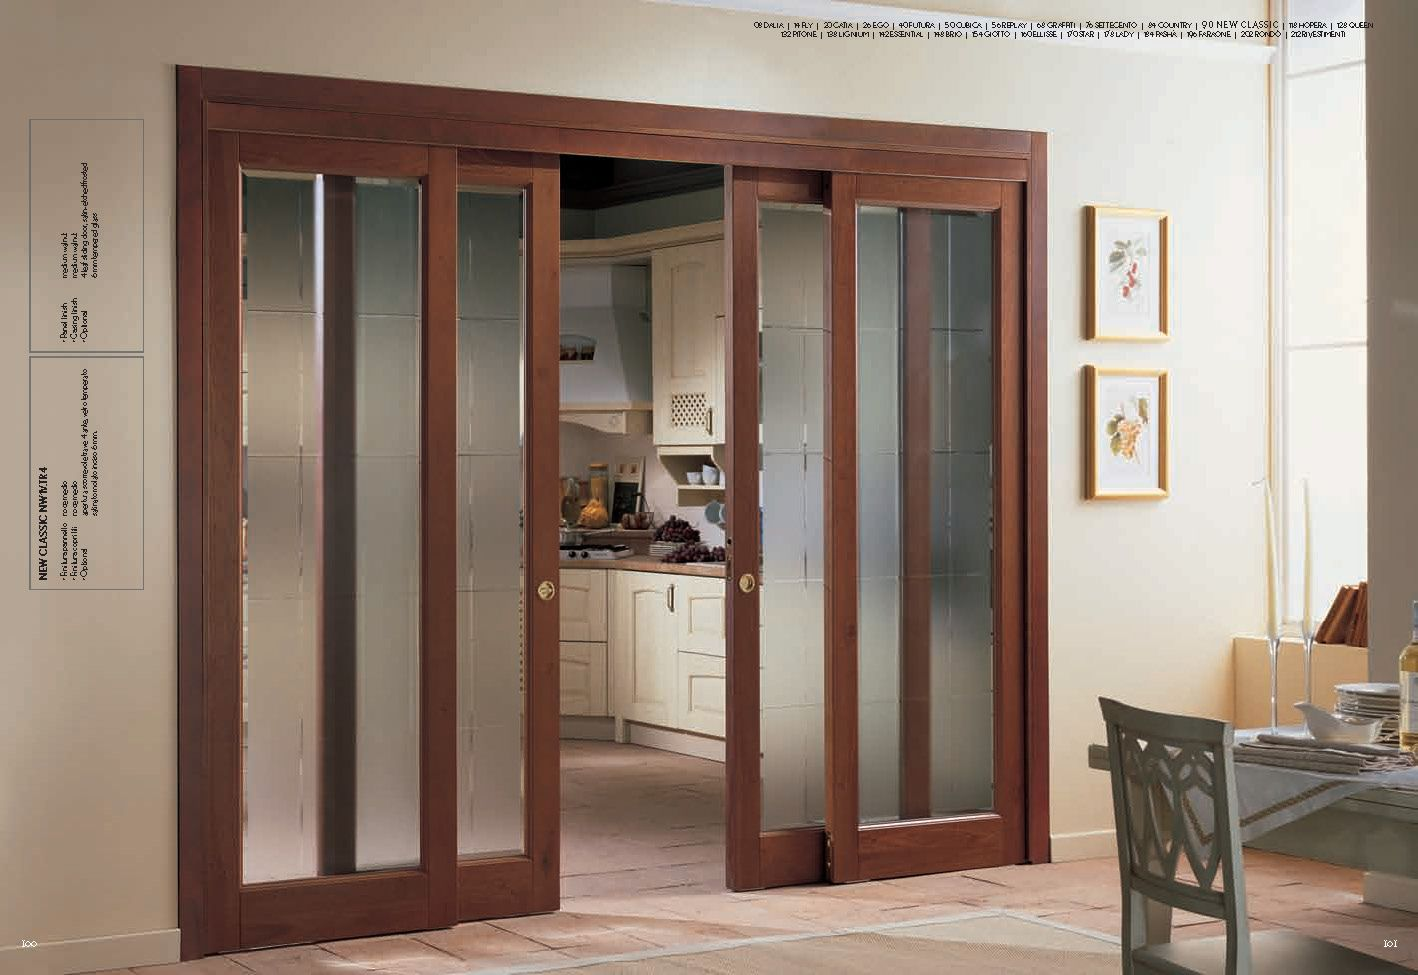 Decofurnish Com Interior Sliding French Doors Frosted Glass Door With Wooden Trim For Home Decoration